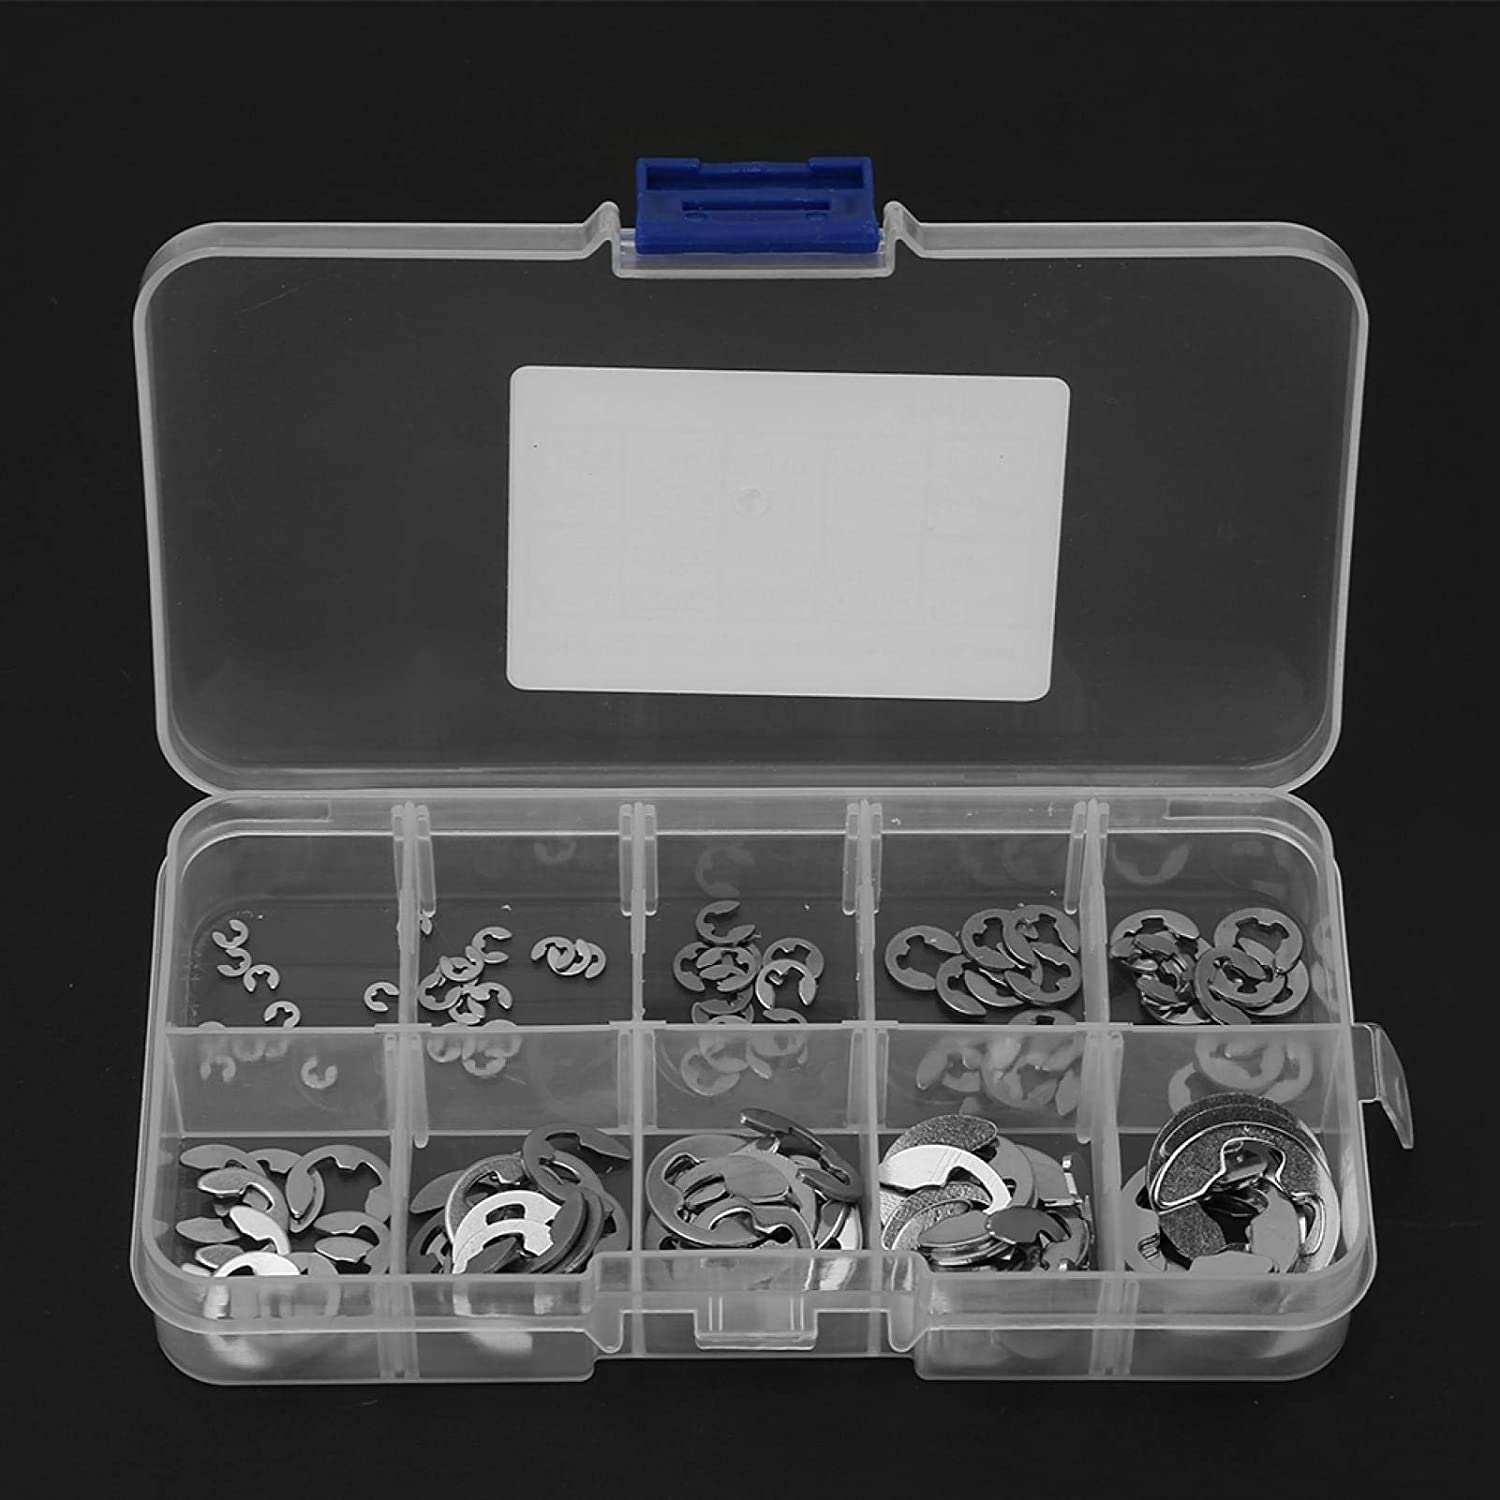 Retaining Snap Ring External Circlip Silver Durable 120Pcs 304 Stainless Steel E-Clip for 1.5mm-10mm